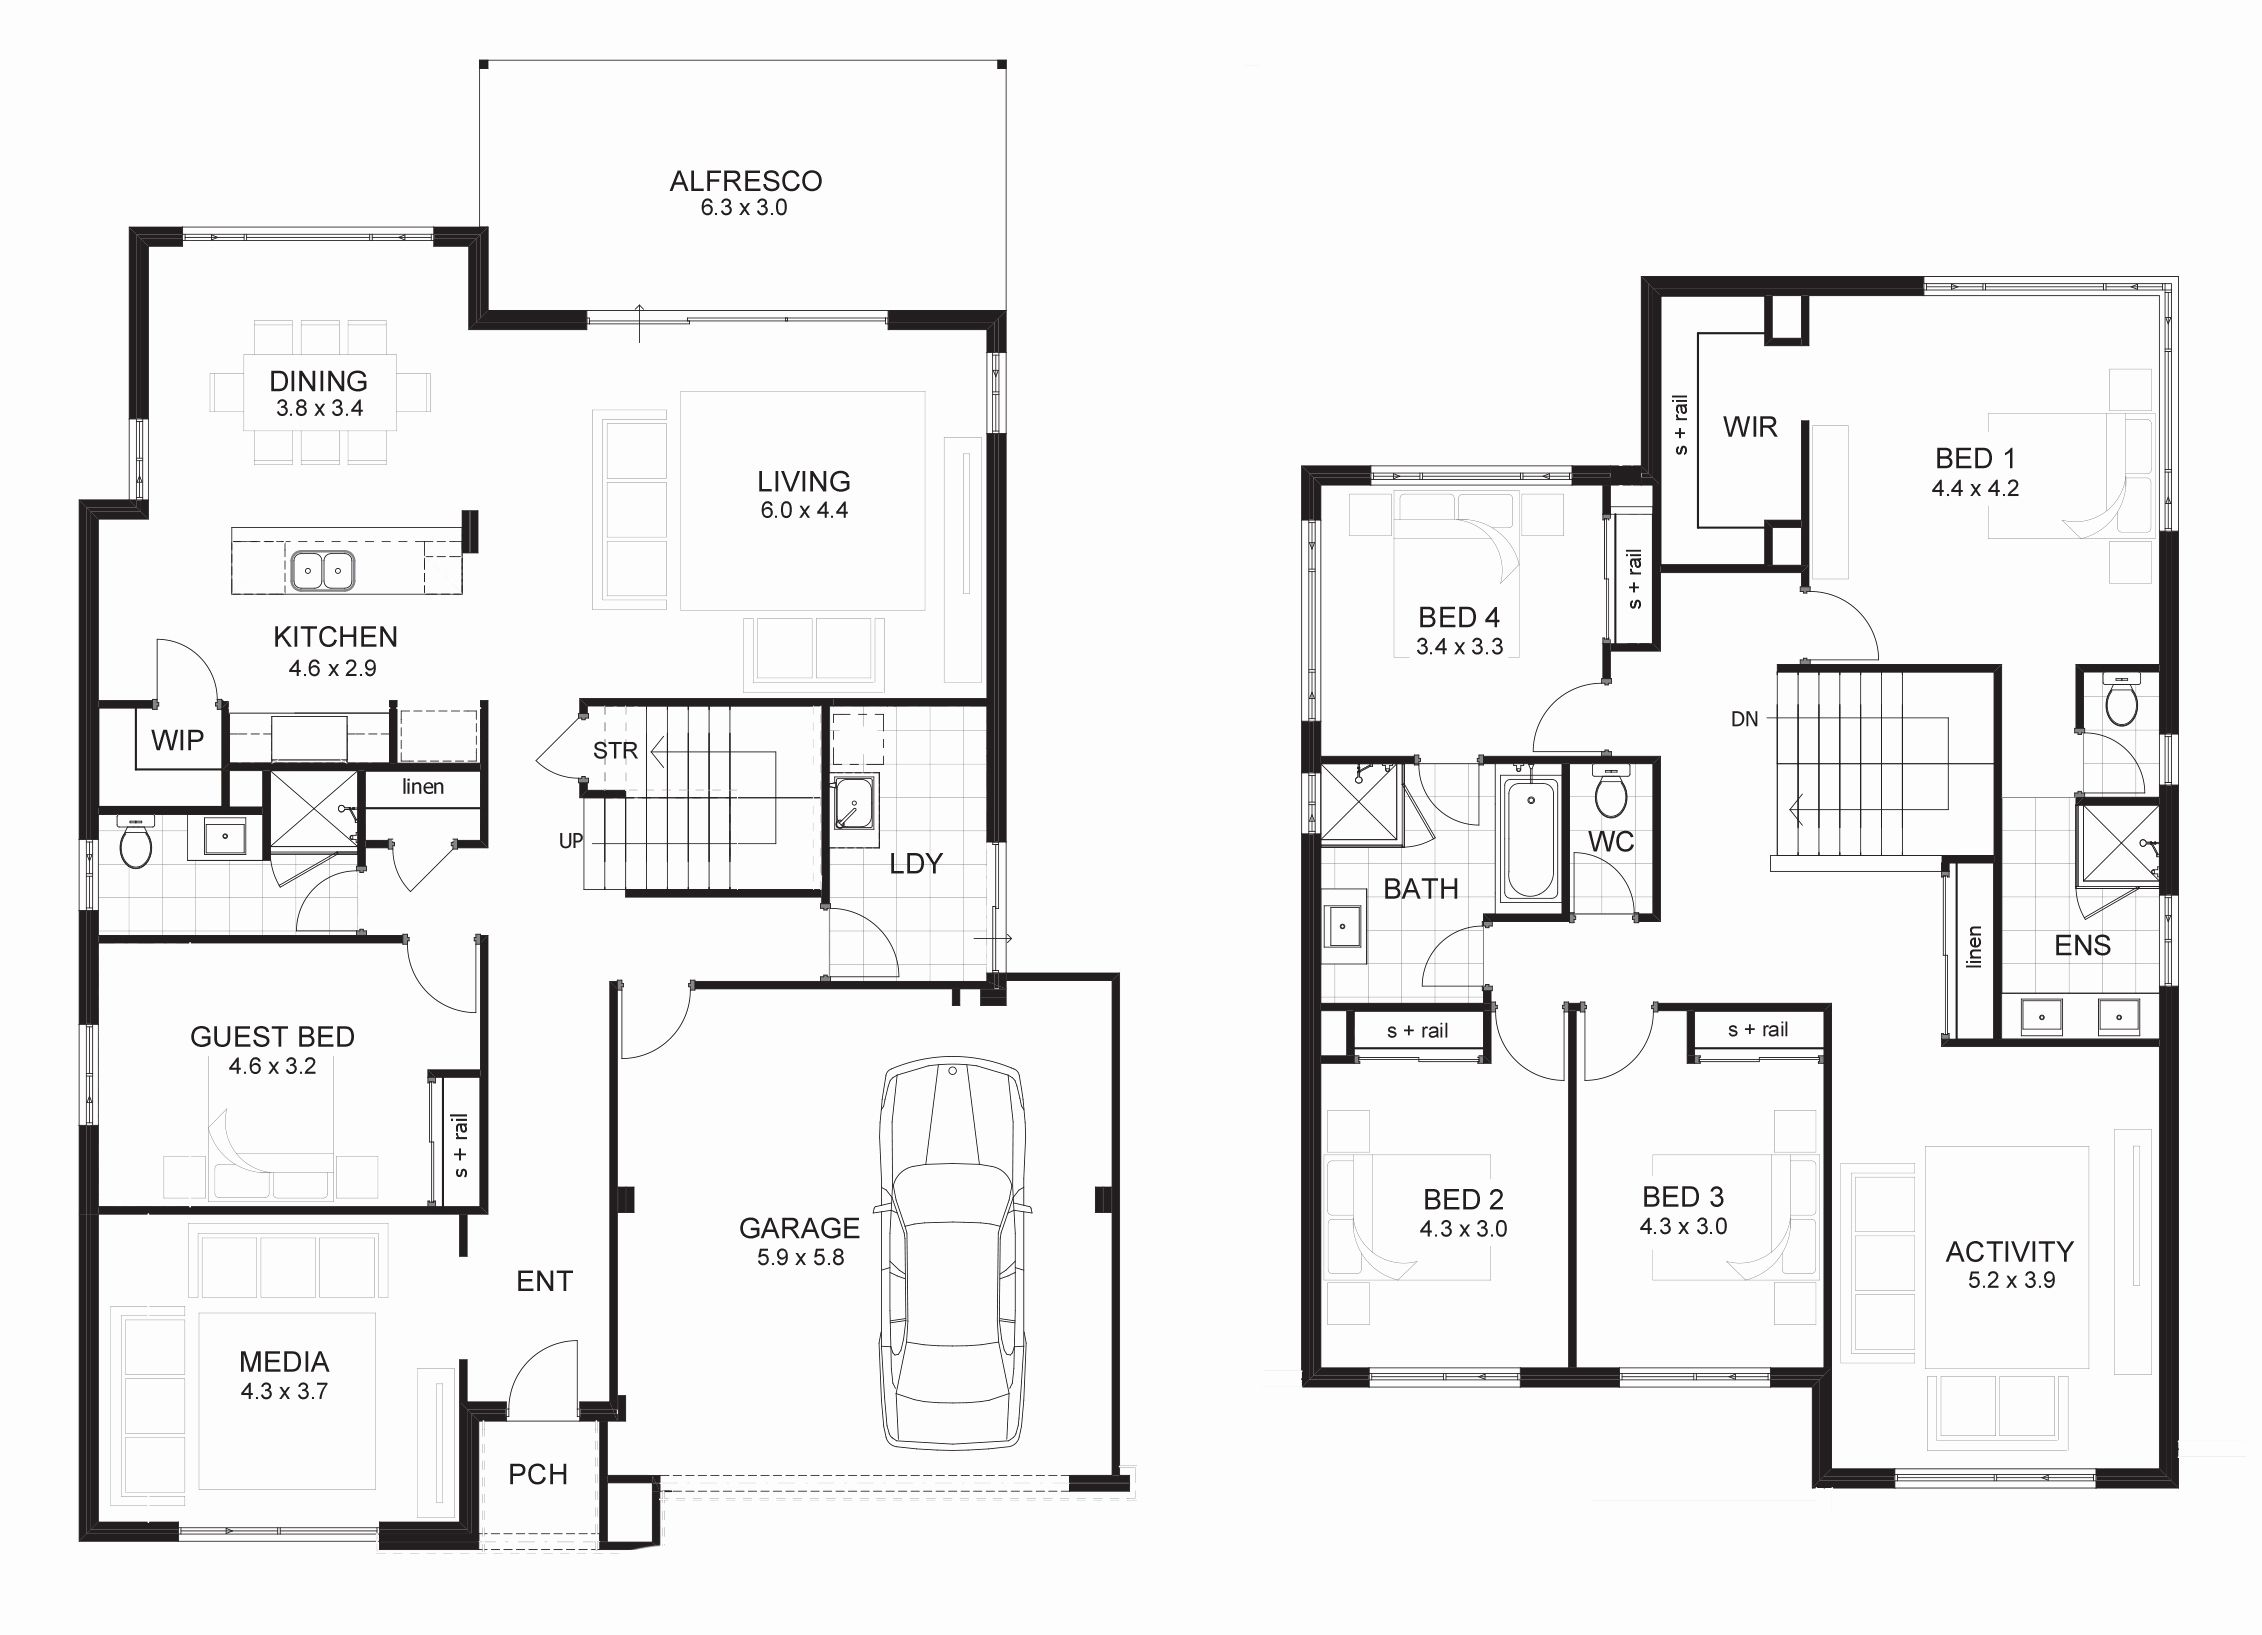 2 Storey House Floor Plan Dwg Inspirational Residential Building